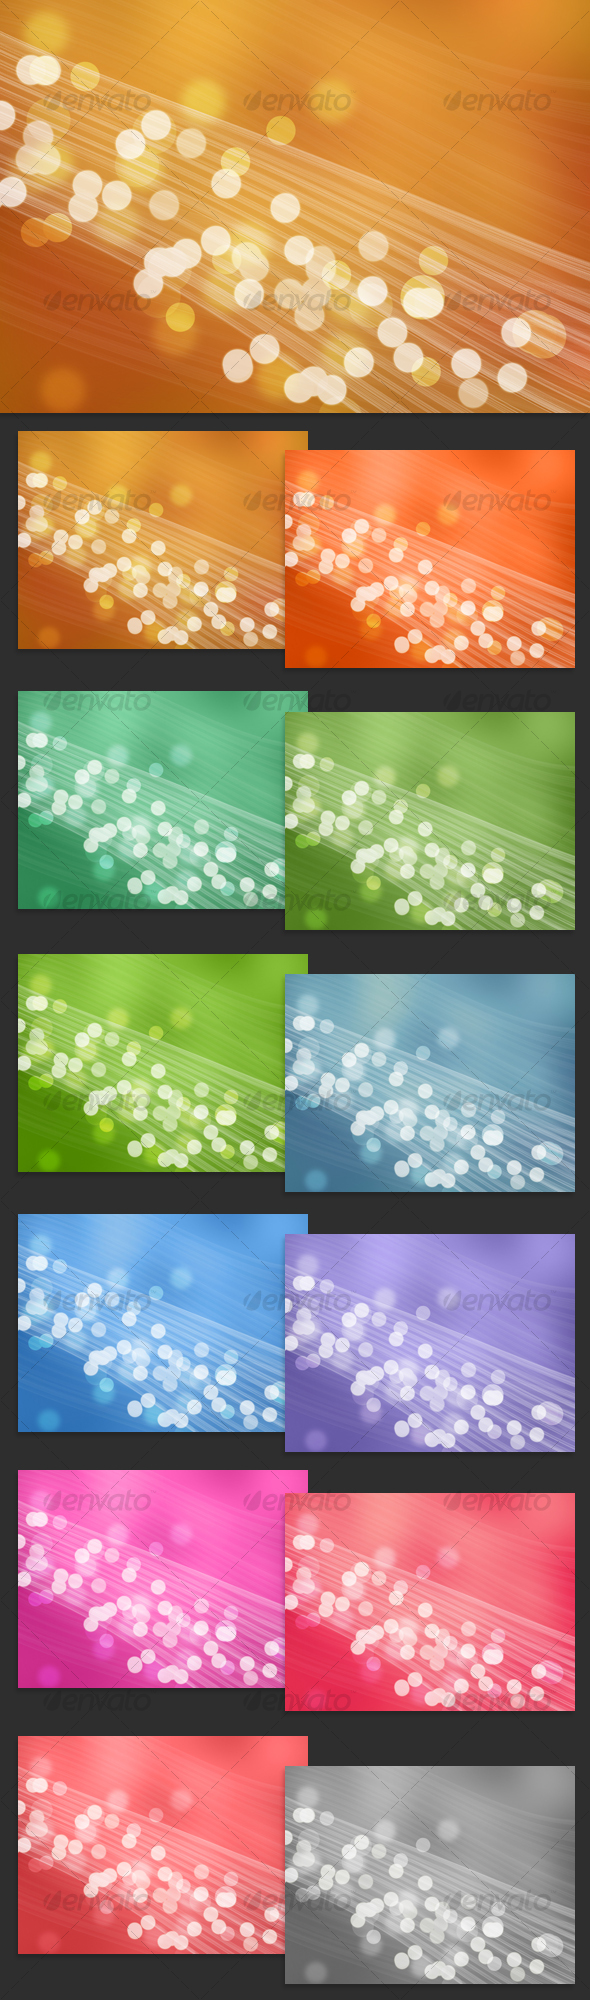 Light Bubbles - Abstract Background Pack - Backgrounds Graphics